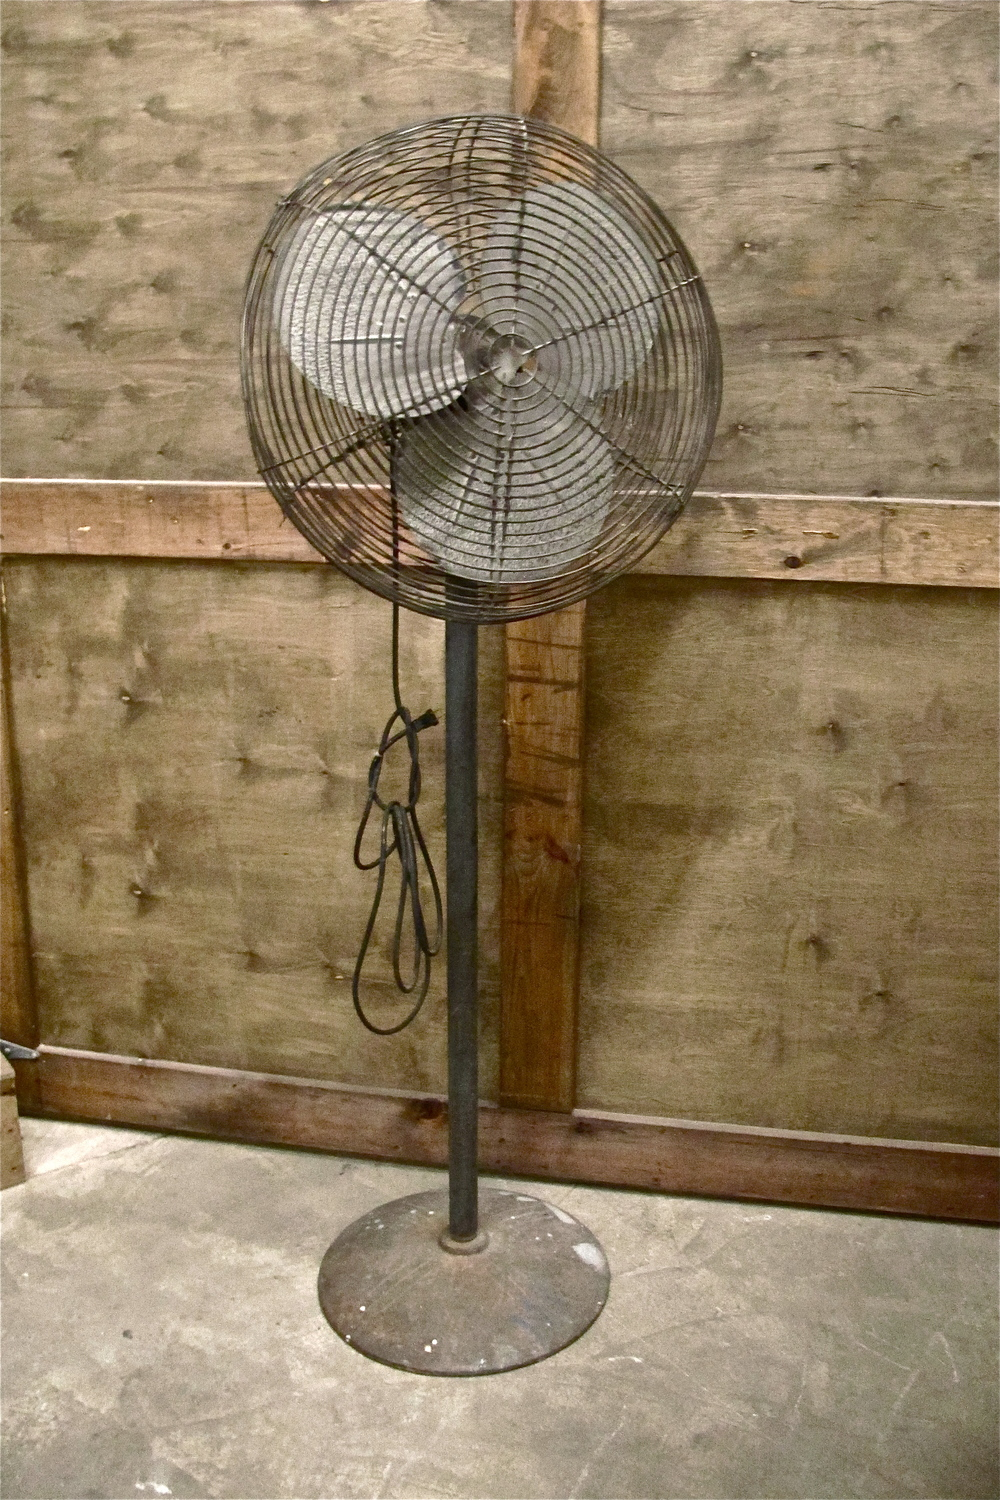 Vintage Stand-up Metal Fan with 3 Blades $100